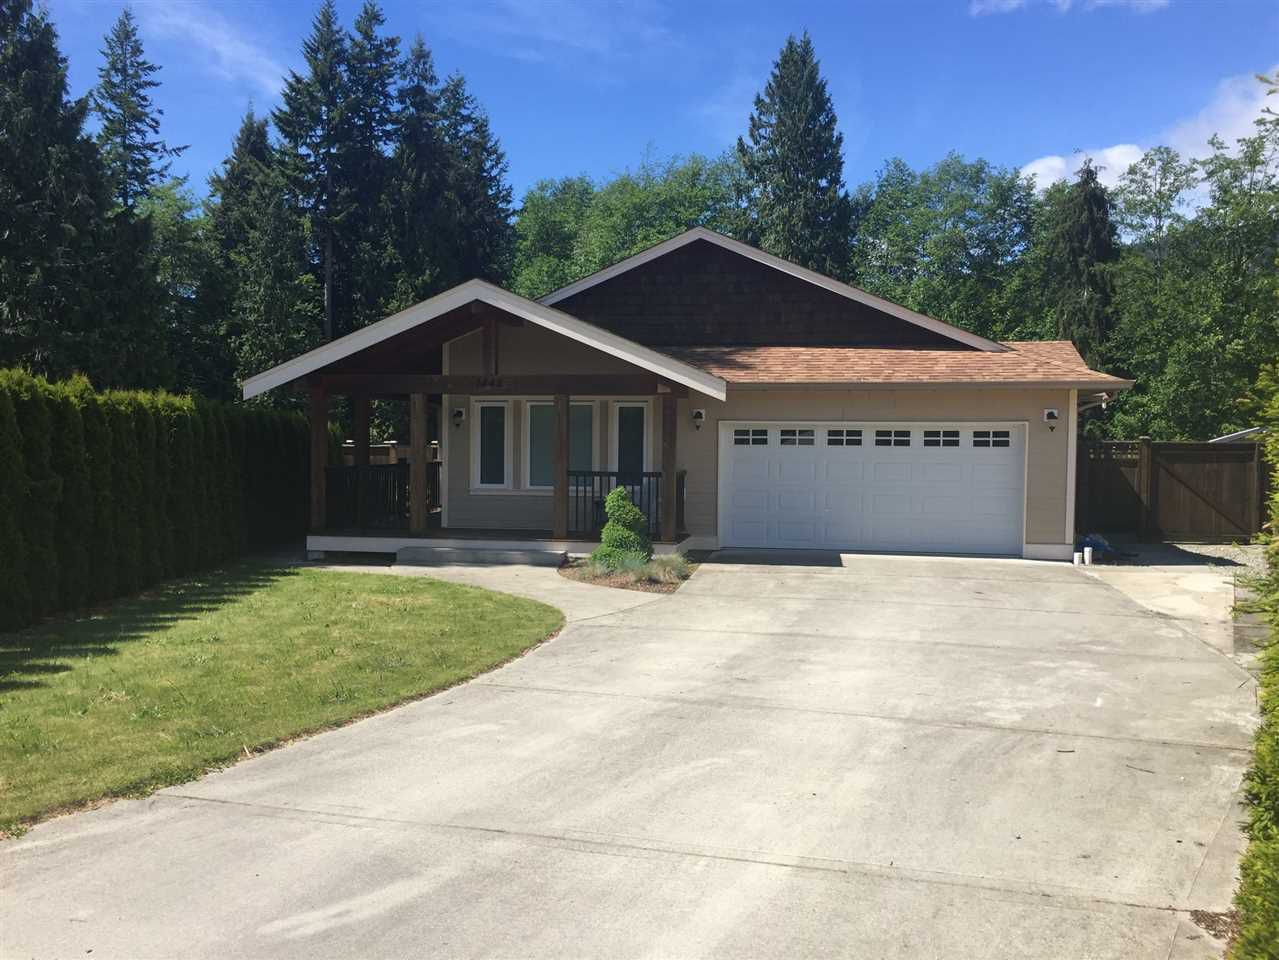 """Main Photo: 1448 MOONDANCE Place in Gibsons: Gibsons & Area House for sale in """"Georgia Crest"""" (Sunshine Coast)  : MLS®# R2171046"""